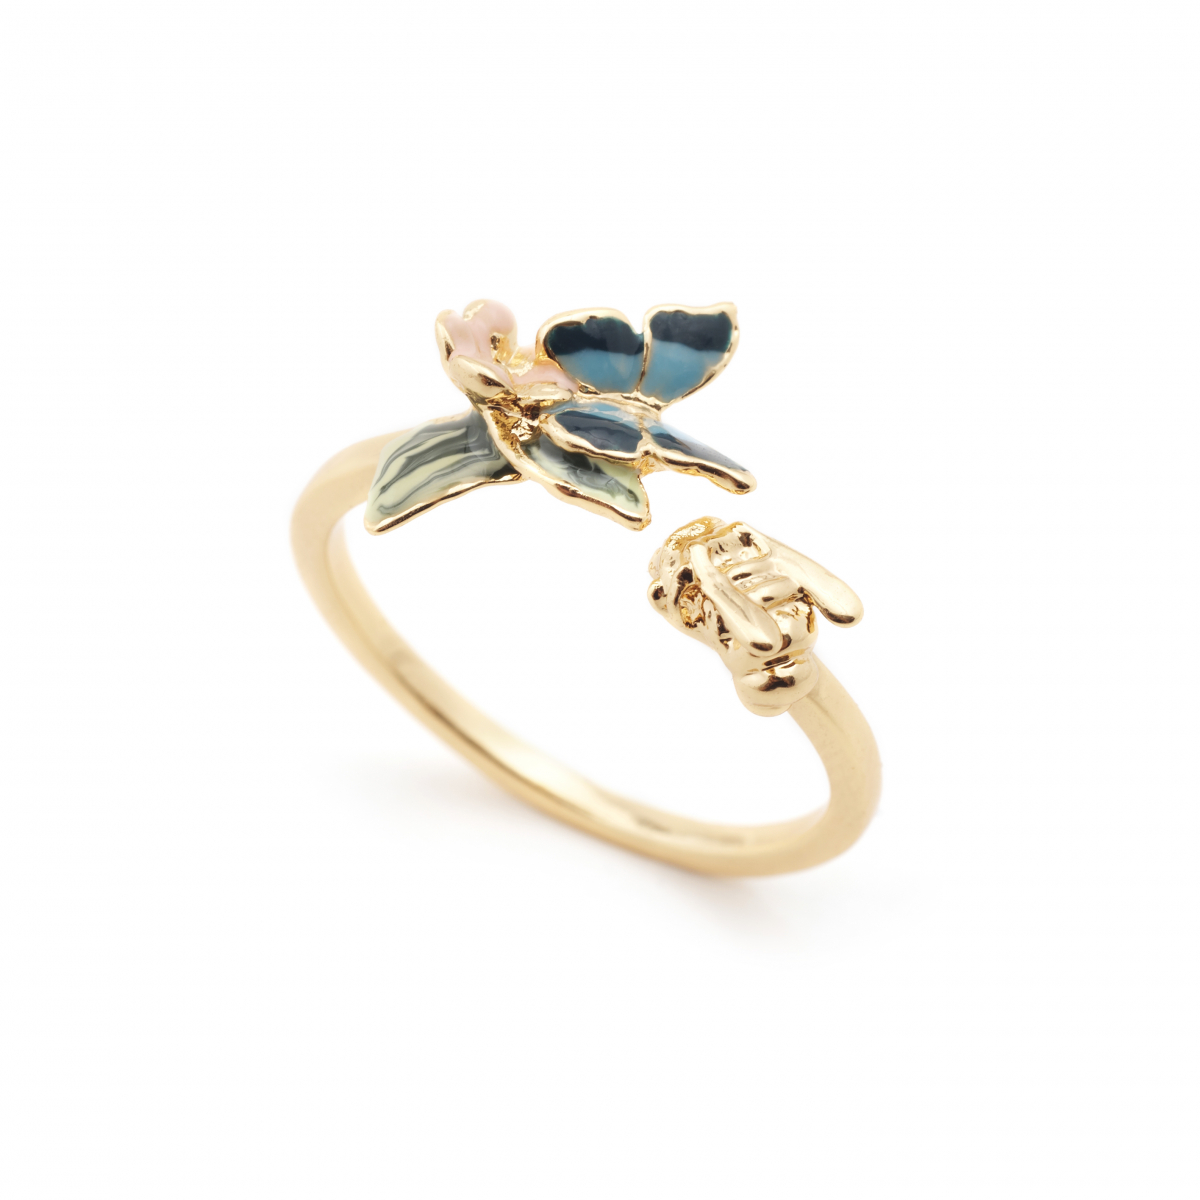 Gold Plated Enamel Butterfly Ring - Gold Bill Skinner